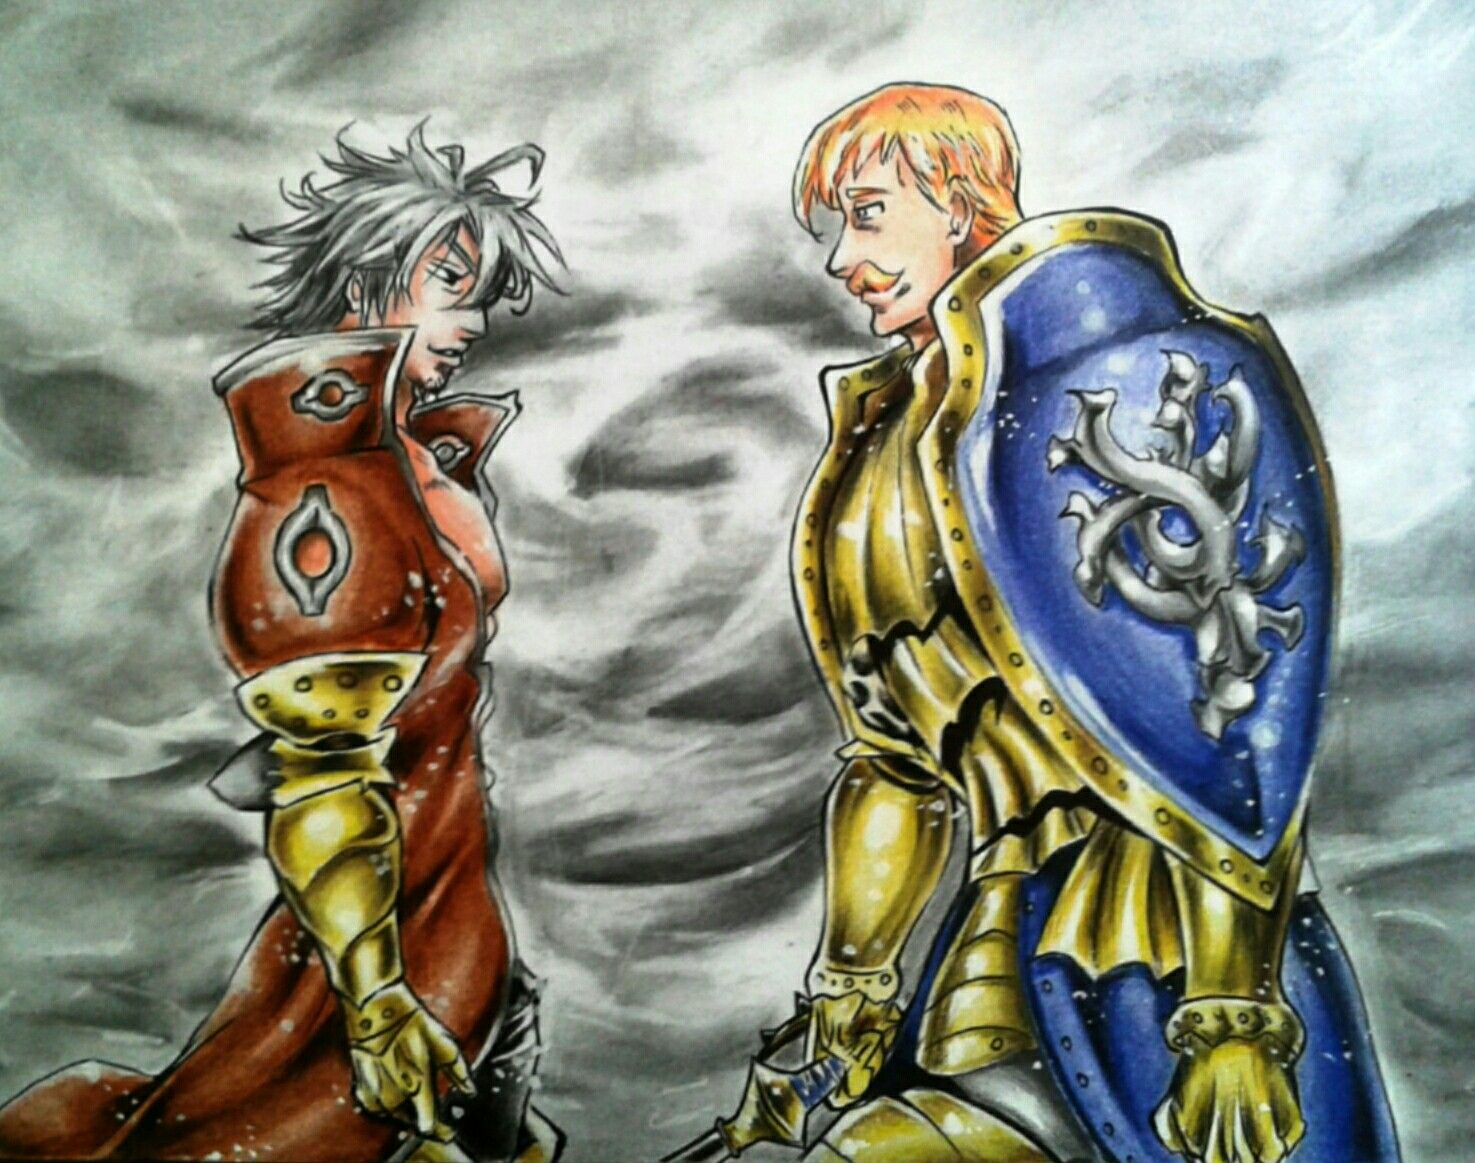 My fanart of Escanor and Estarossa Nanatsu no taizai